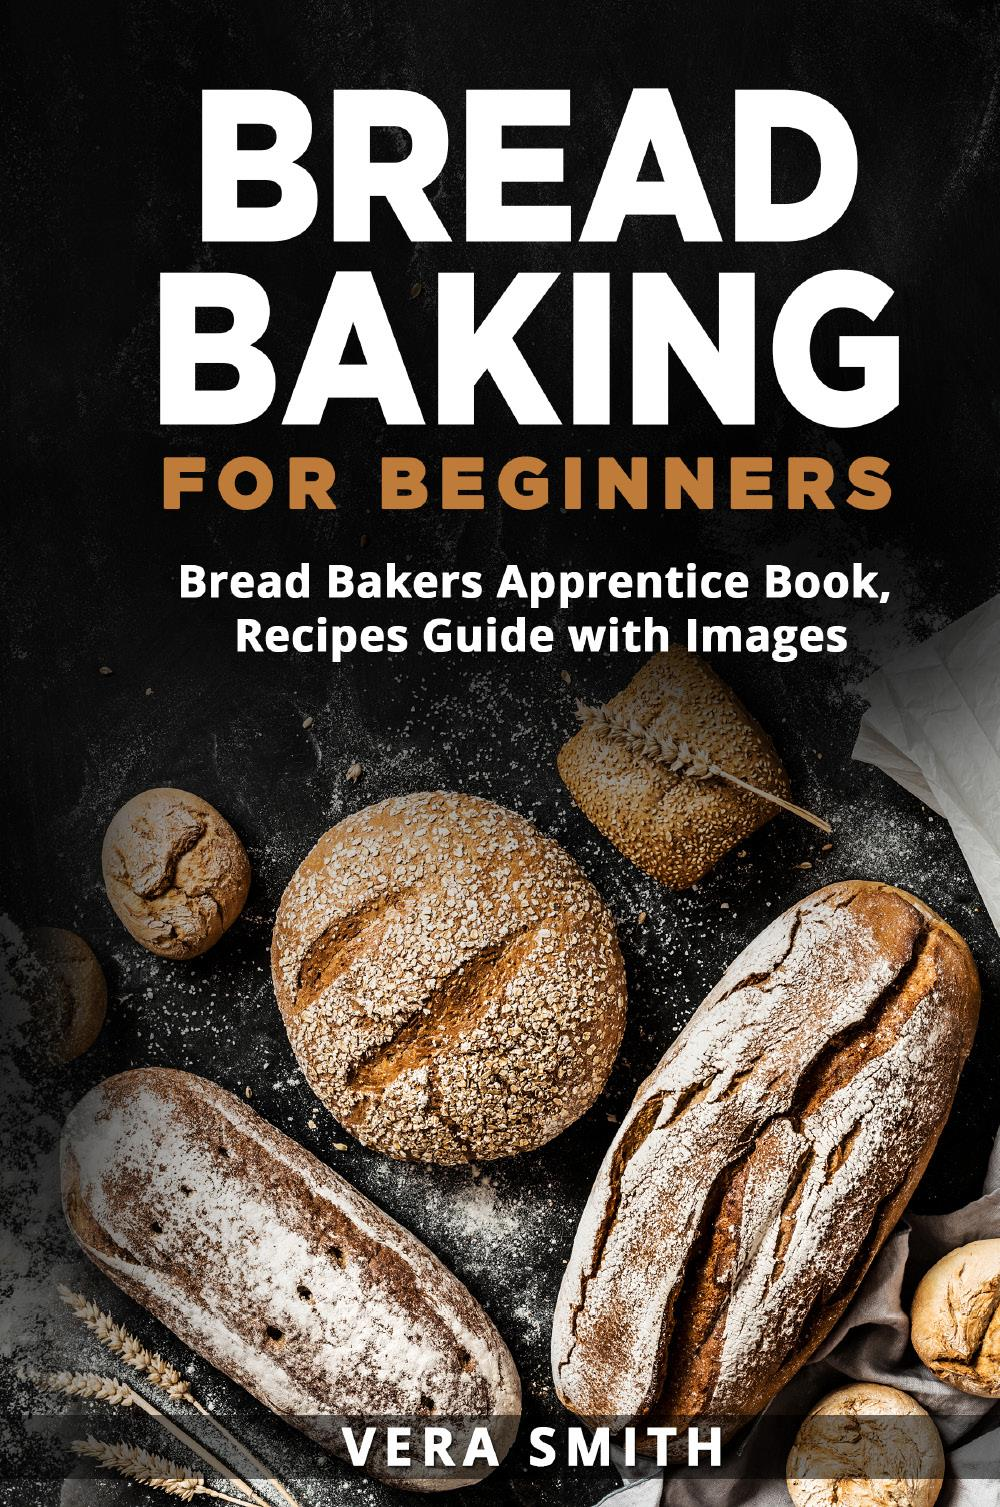 Bread Baking for Beginners. Bread Bakers Apprentice Book, Recipes Guide with Images